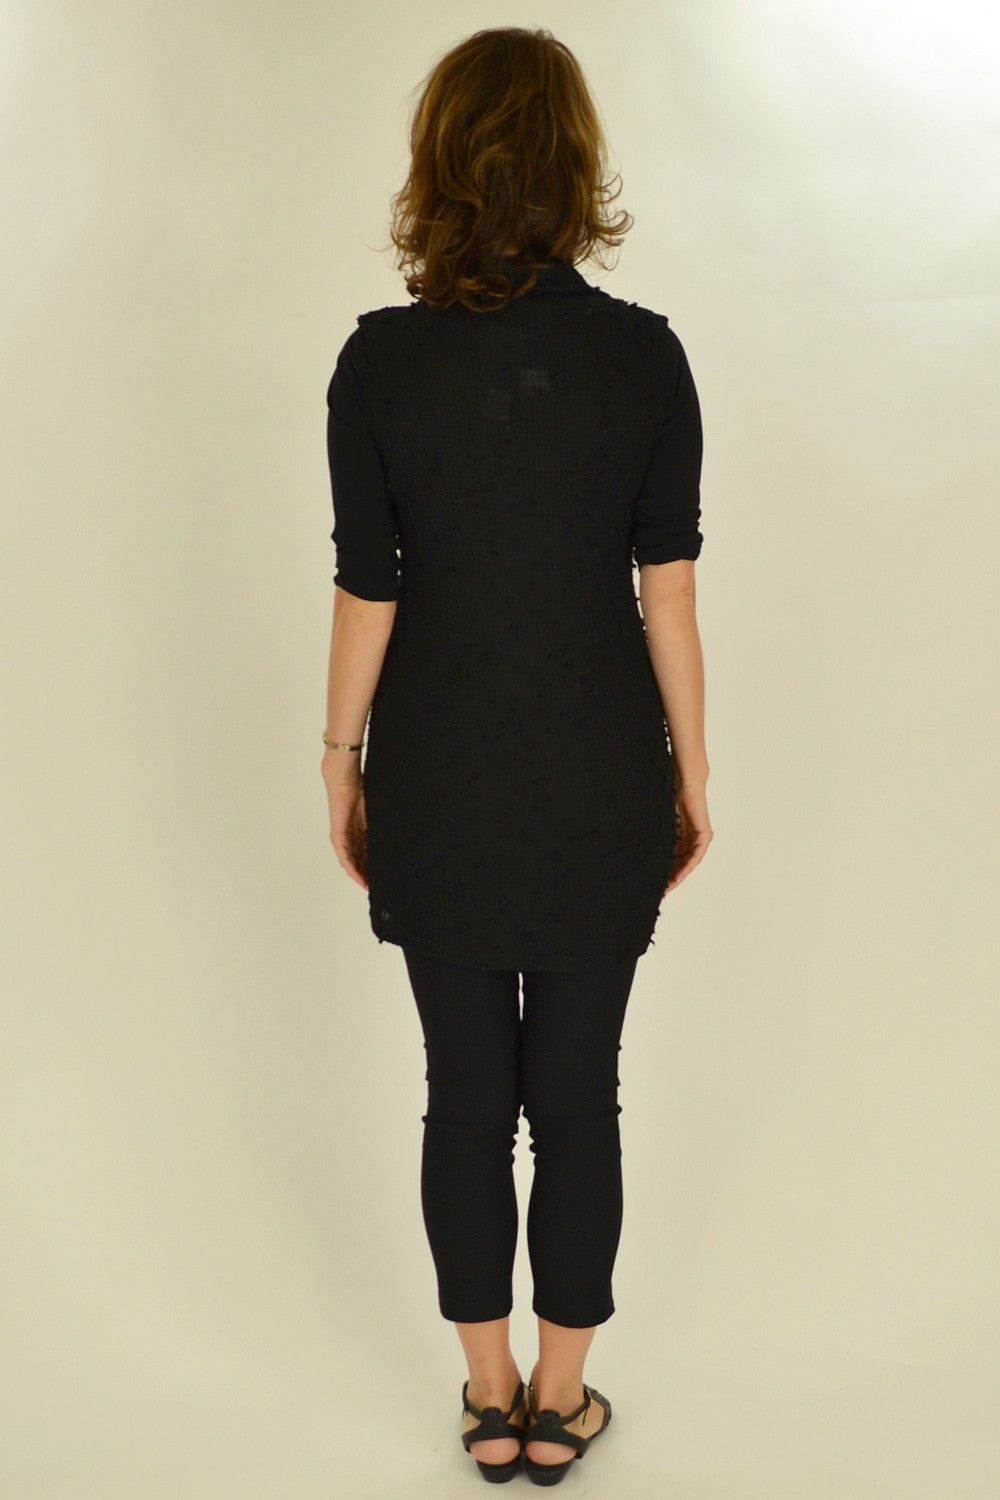 Black Knit Mia Tunic - at I Love Tunics @ www.ilovetunics.com = Number One! Tunics Destination